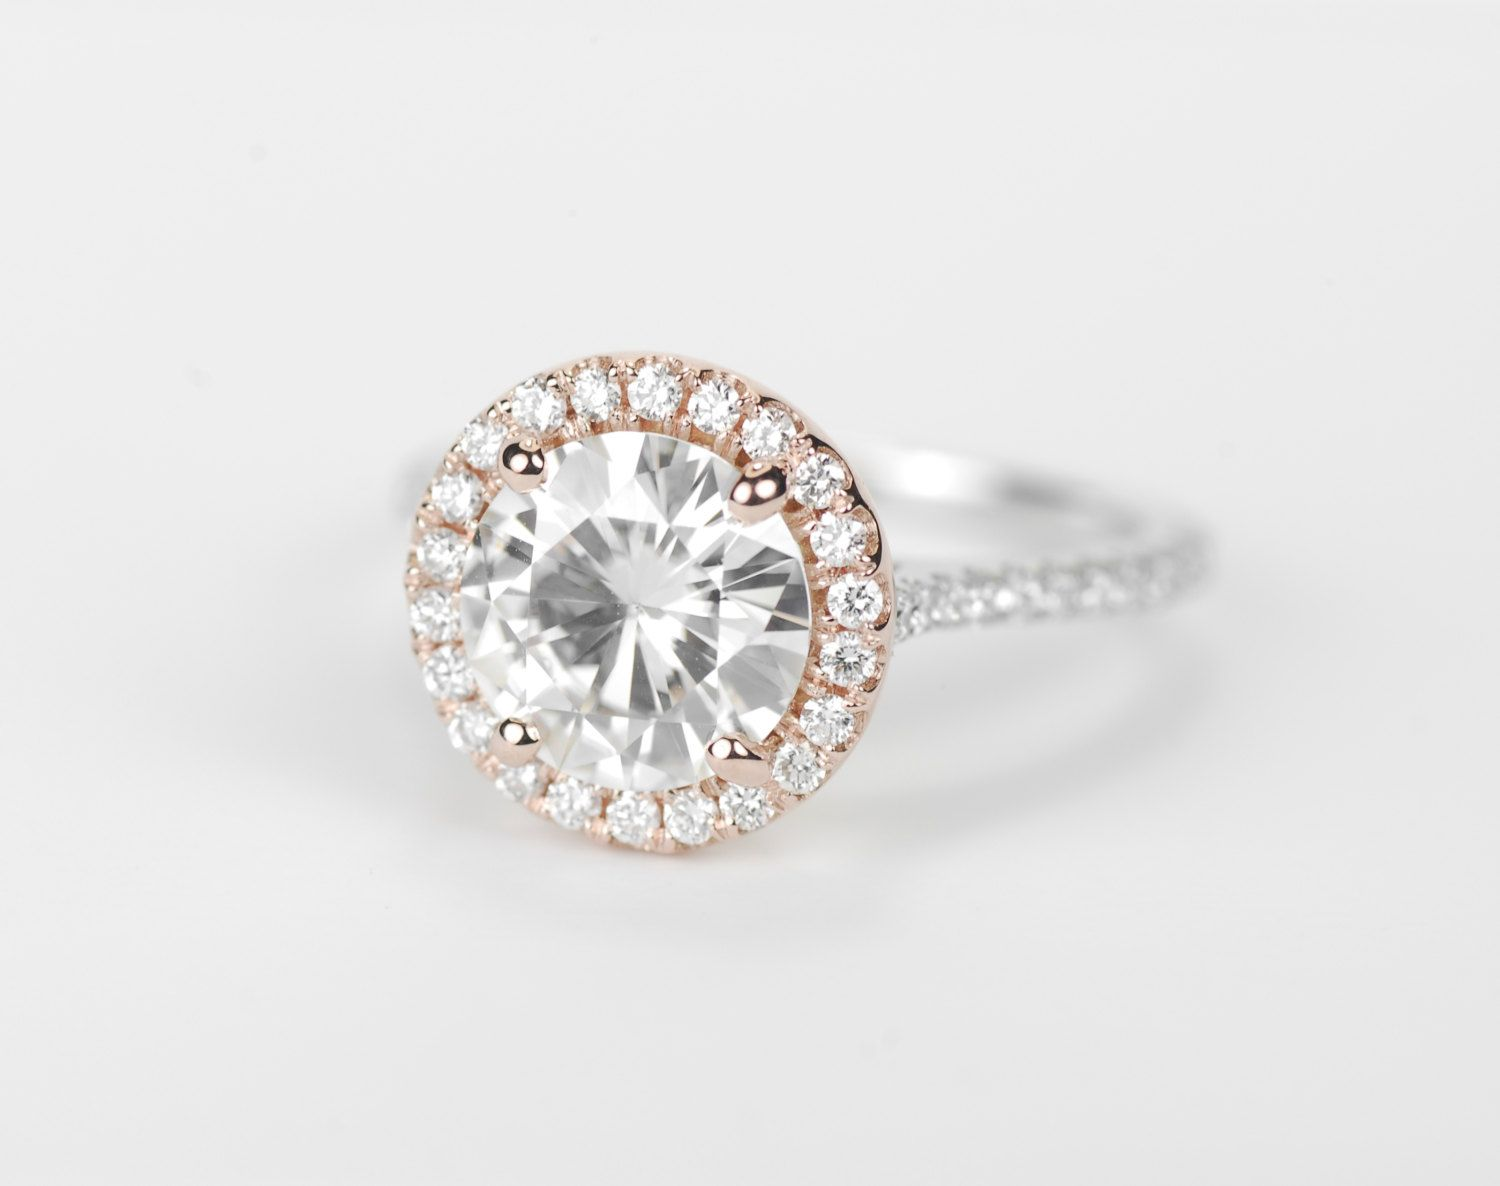 Certified  Two  Tone Round Forever Brilliant Moissanite Diamond Halo Engagement  Ring  14k Rose And White Gold